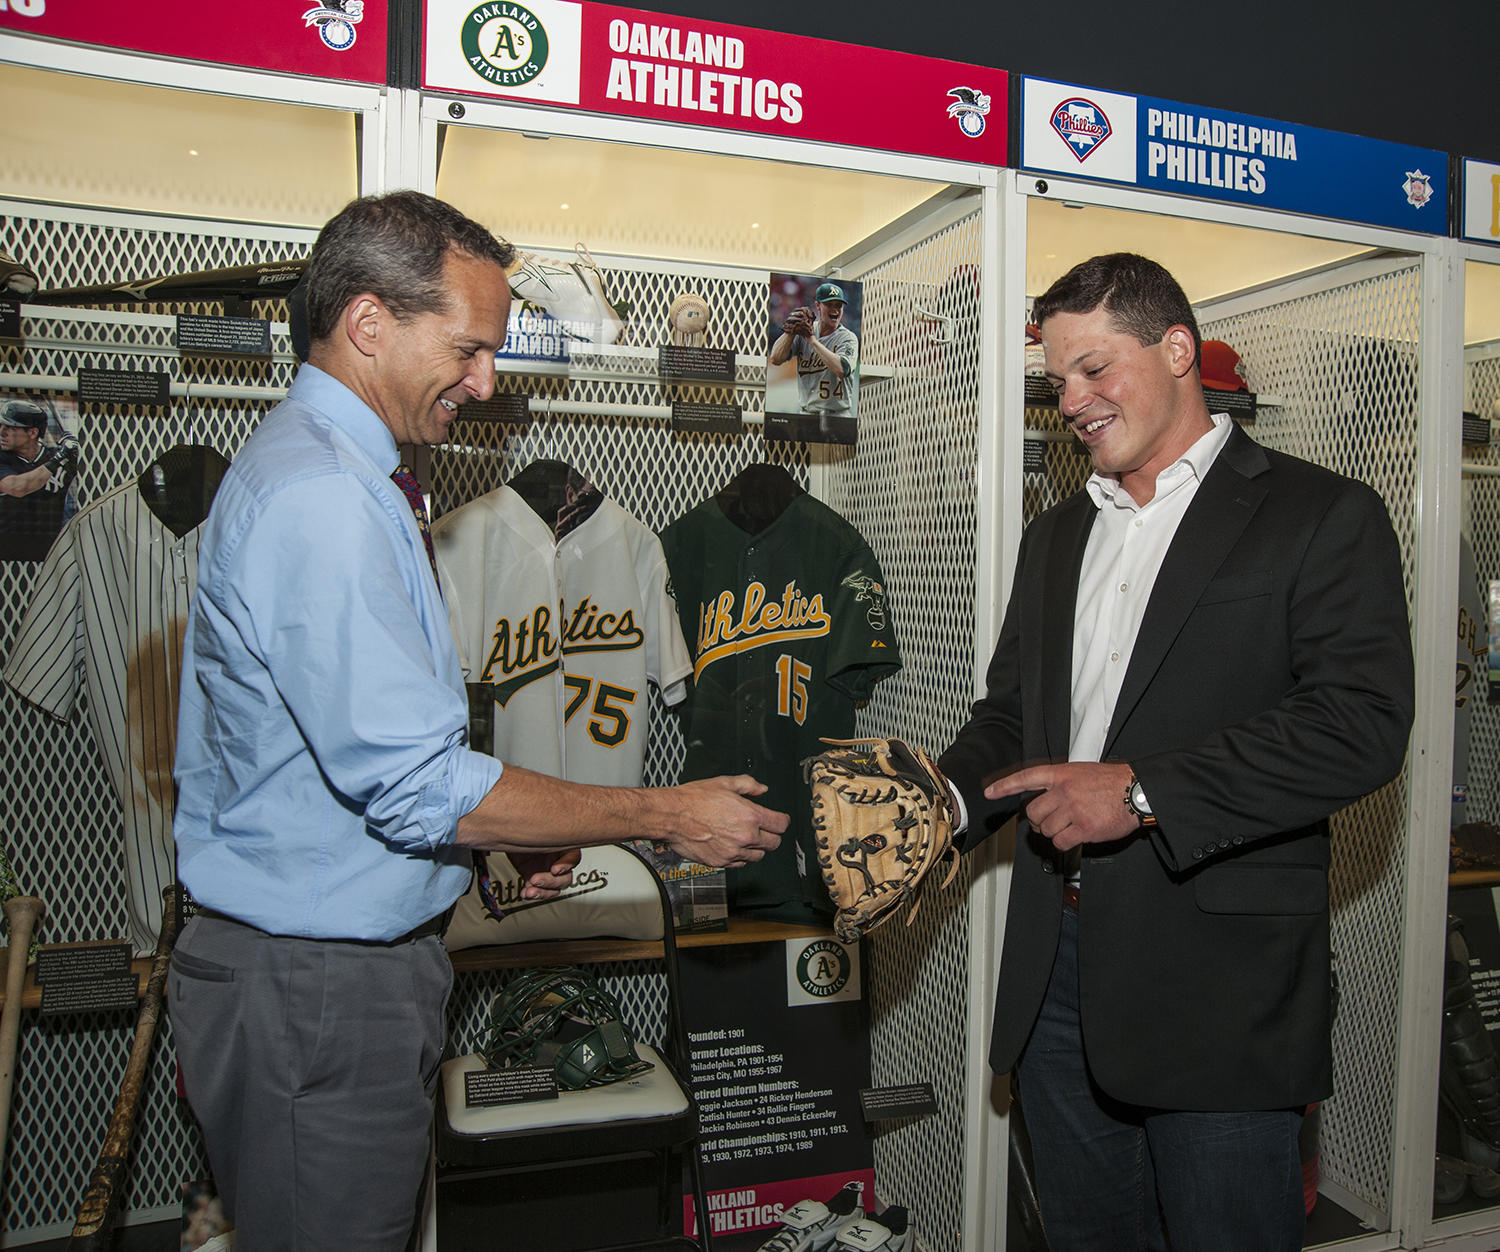 Phil Pohl shows off his glove to Hall of Fame President Jeff Idelson, outside of the A's locker on the second floor of the Museum. (Milo Stewart Jr. / National Baseball Hall of Fame)